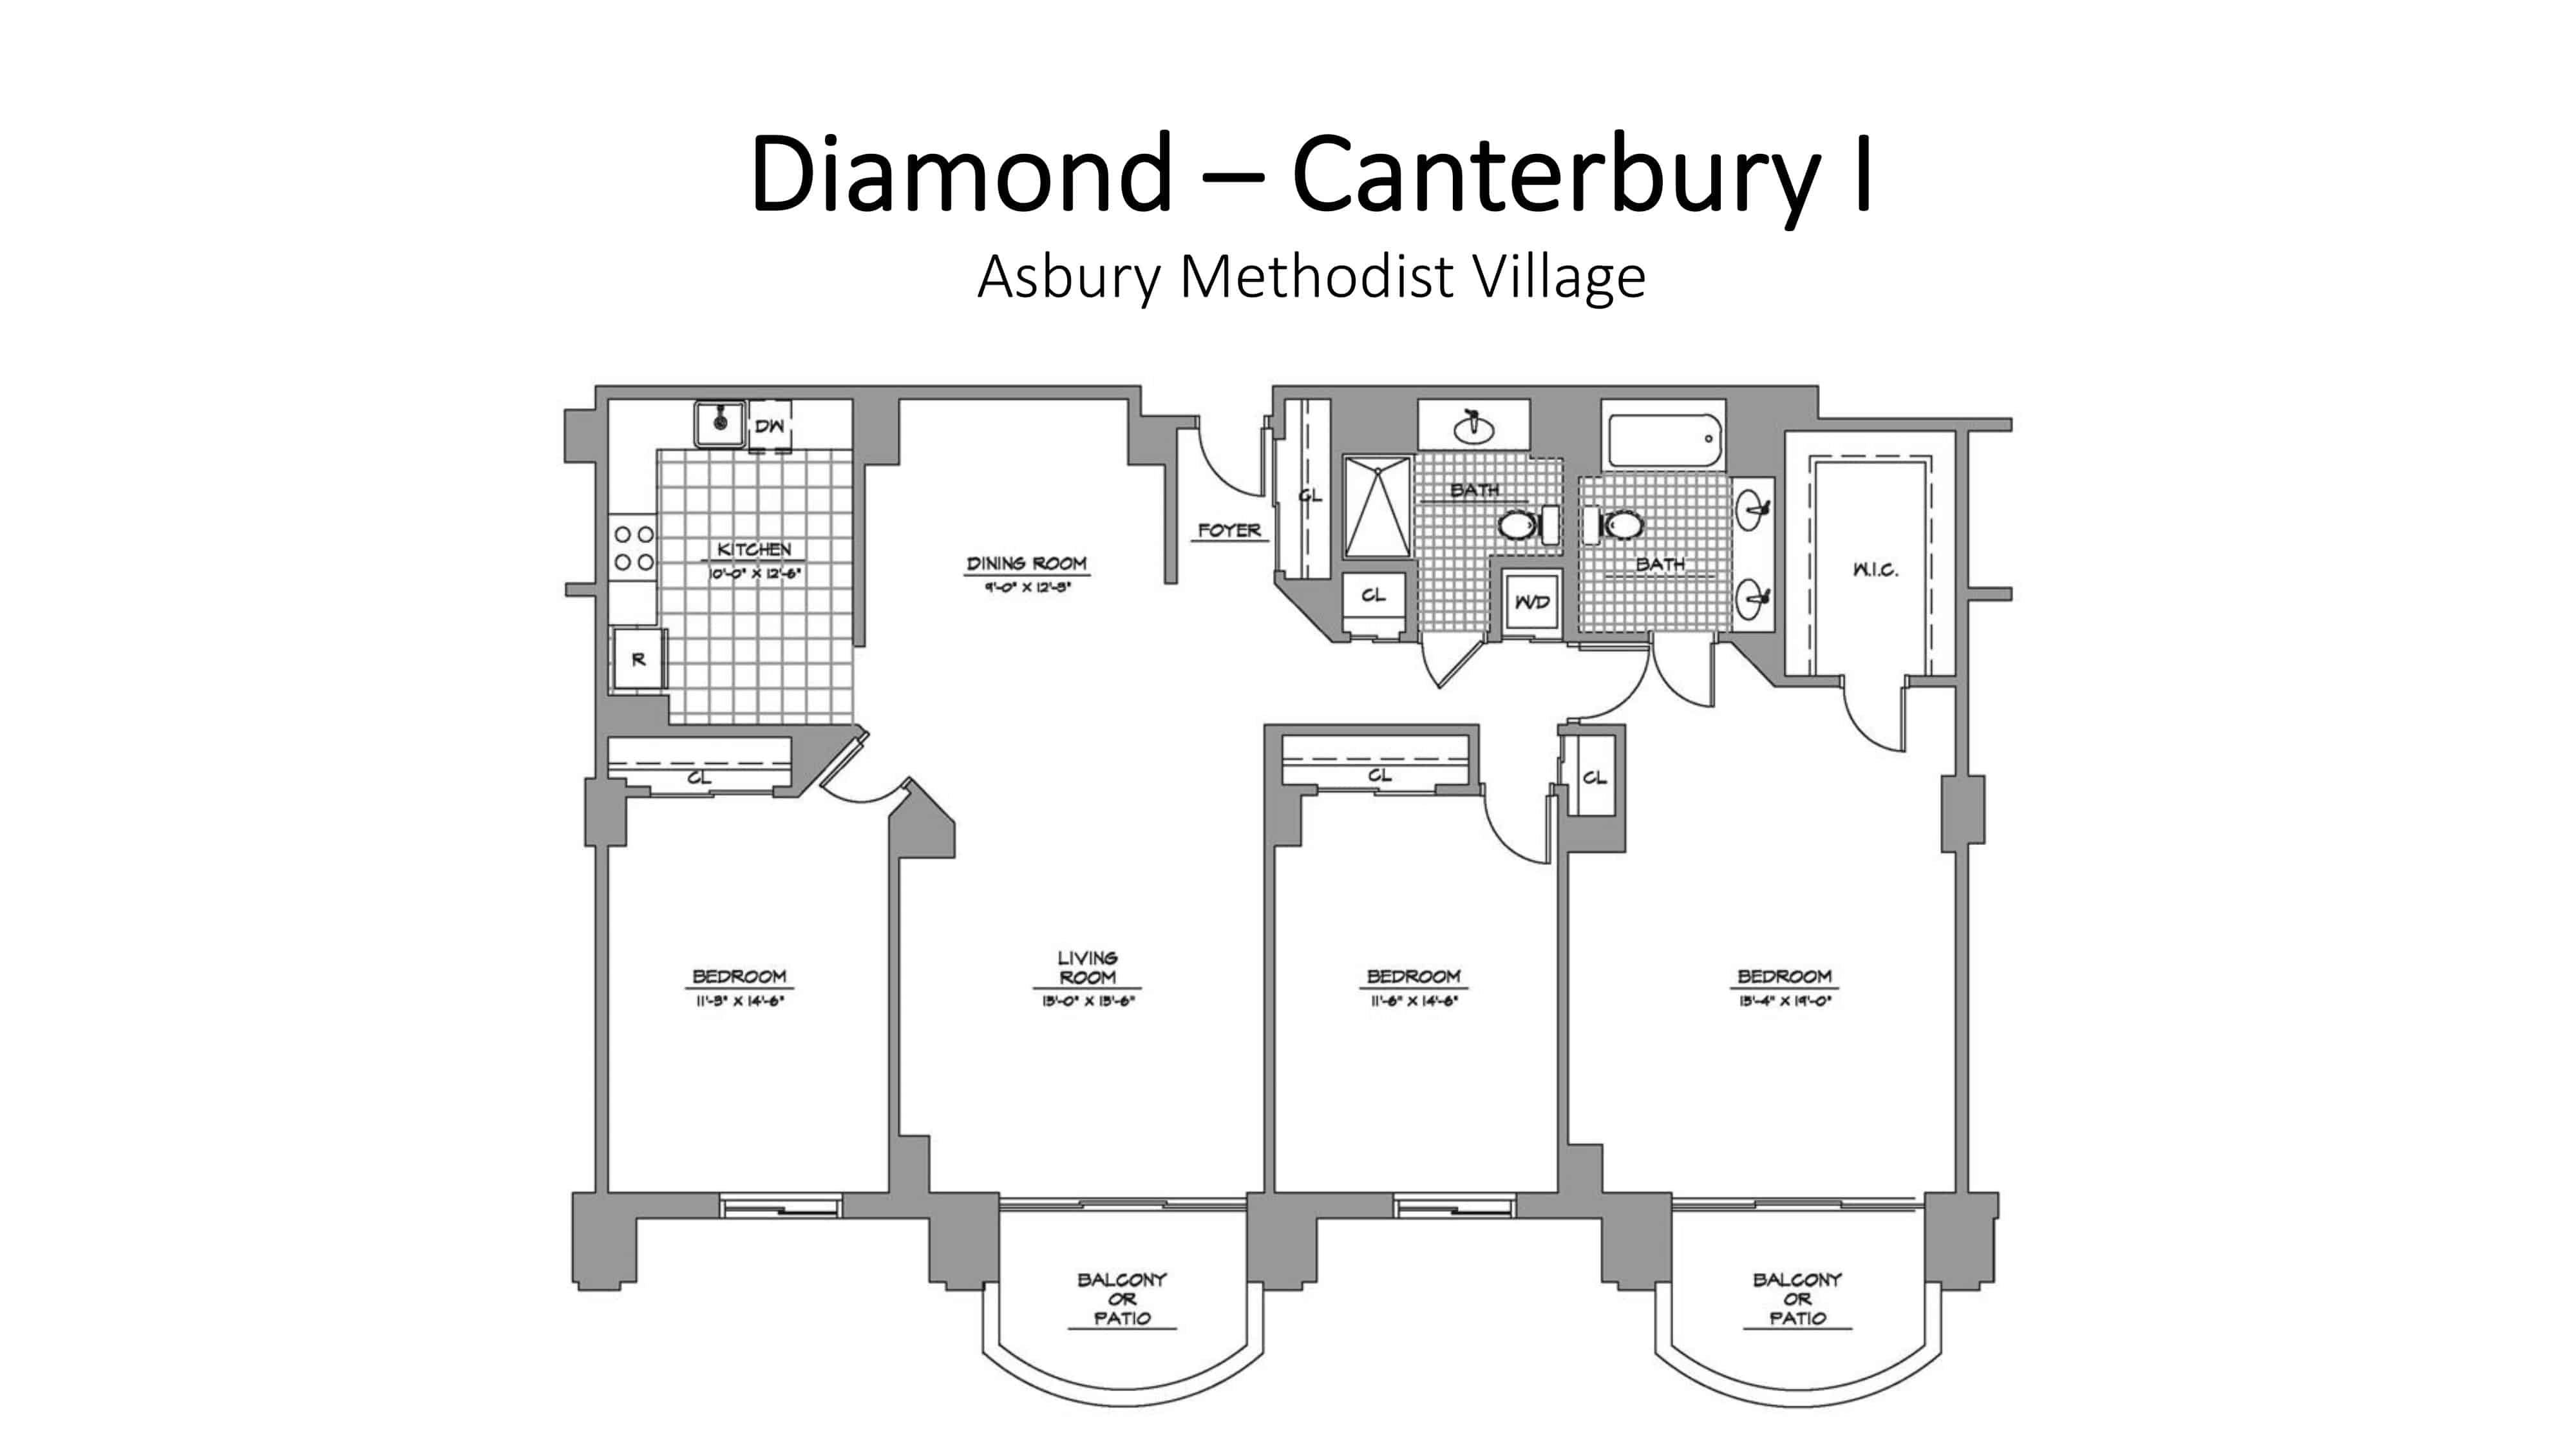 Asbury Methodist Village Diamond - Canterbury I